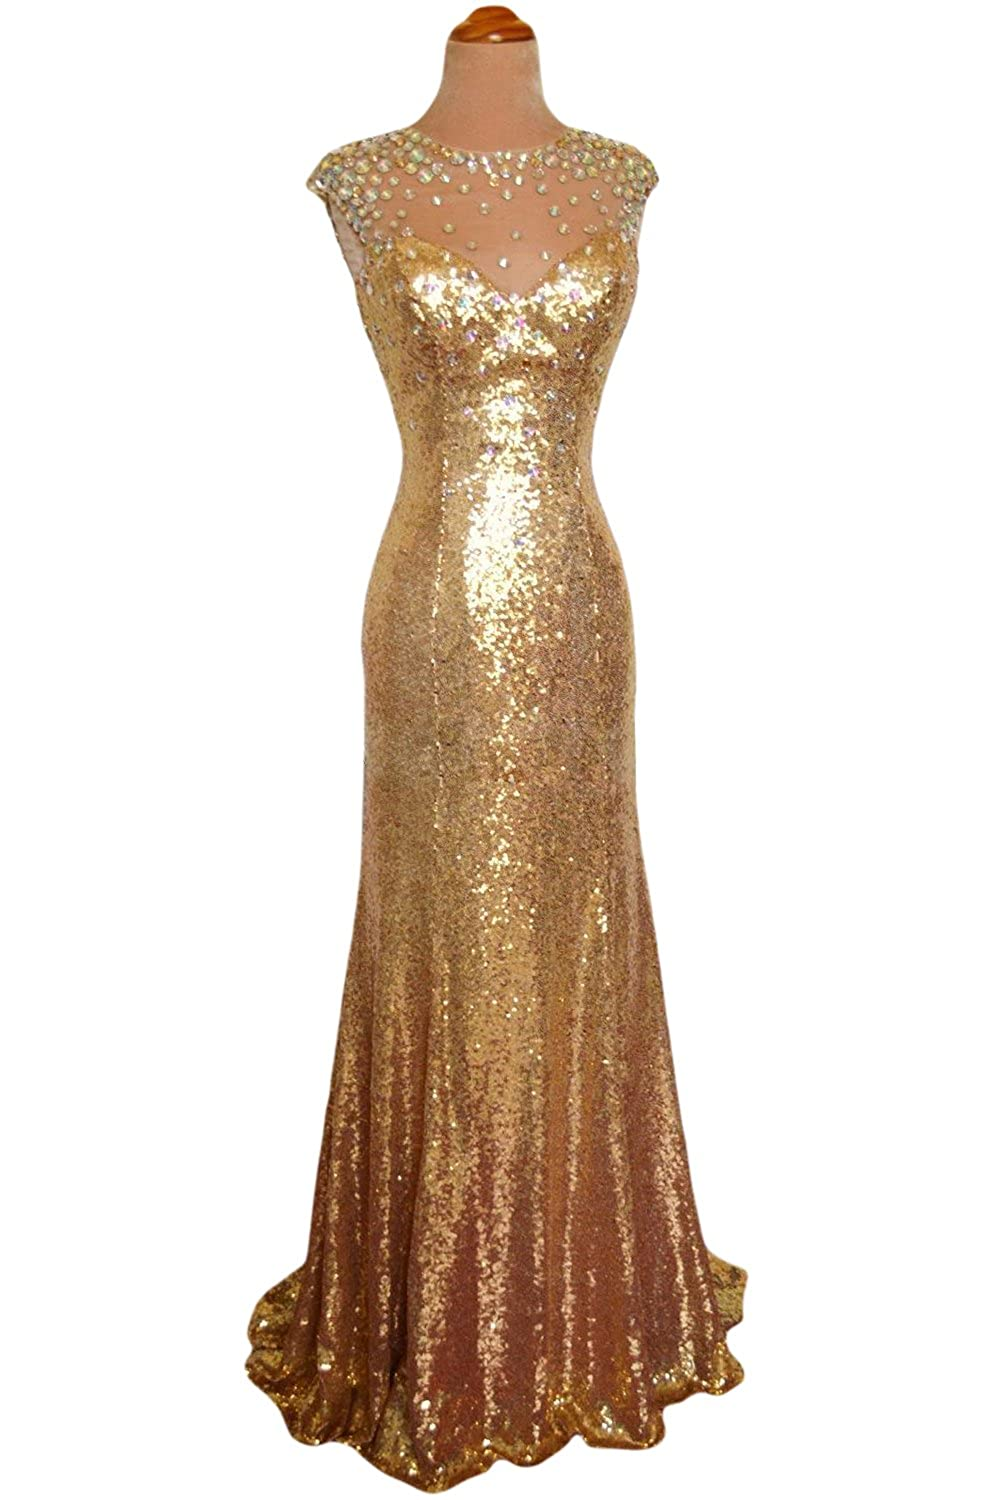 Sunvary Gold Jewel Mermiad Sequin Prom Dance Dress for Mother of the Bride